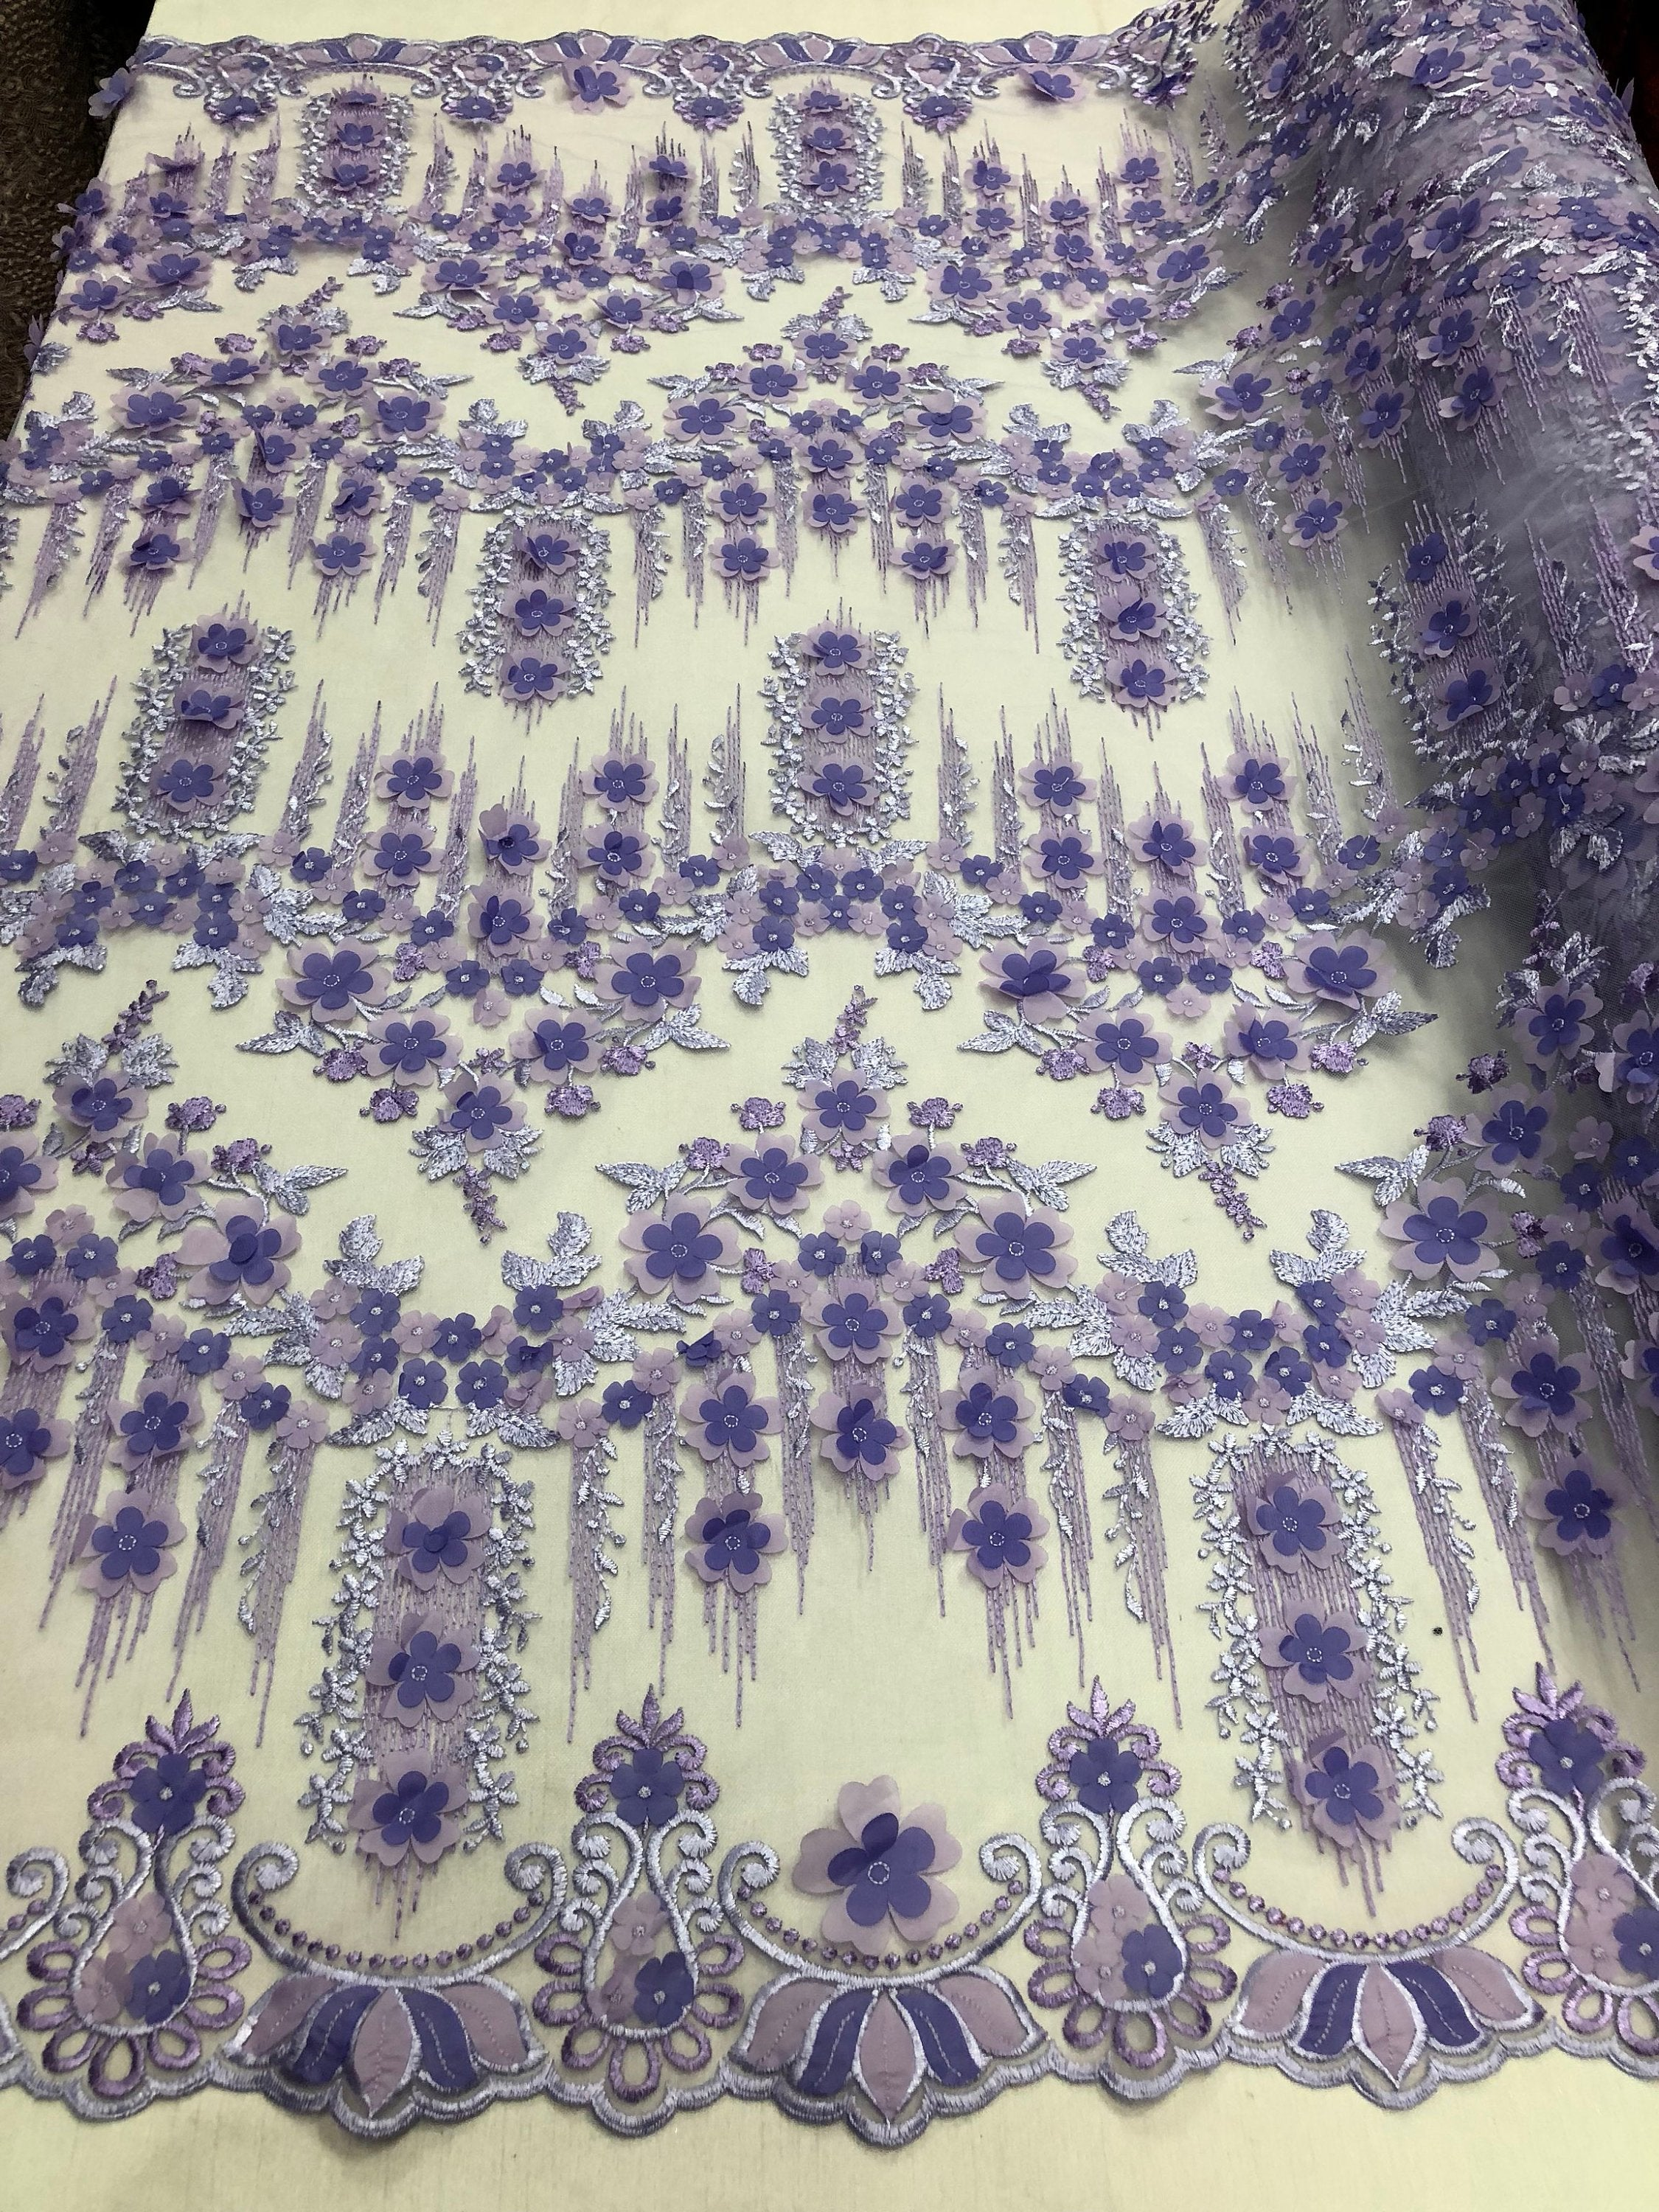 Bridal Wedding Lace Fabric By The Yard - Hand Embroidered Flower 3D LILAC For Veil Mesh Dress Top Wedding Decoration - KINGDOM OF FABRICS